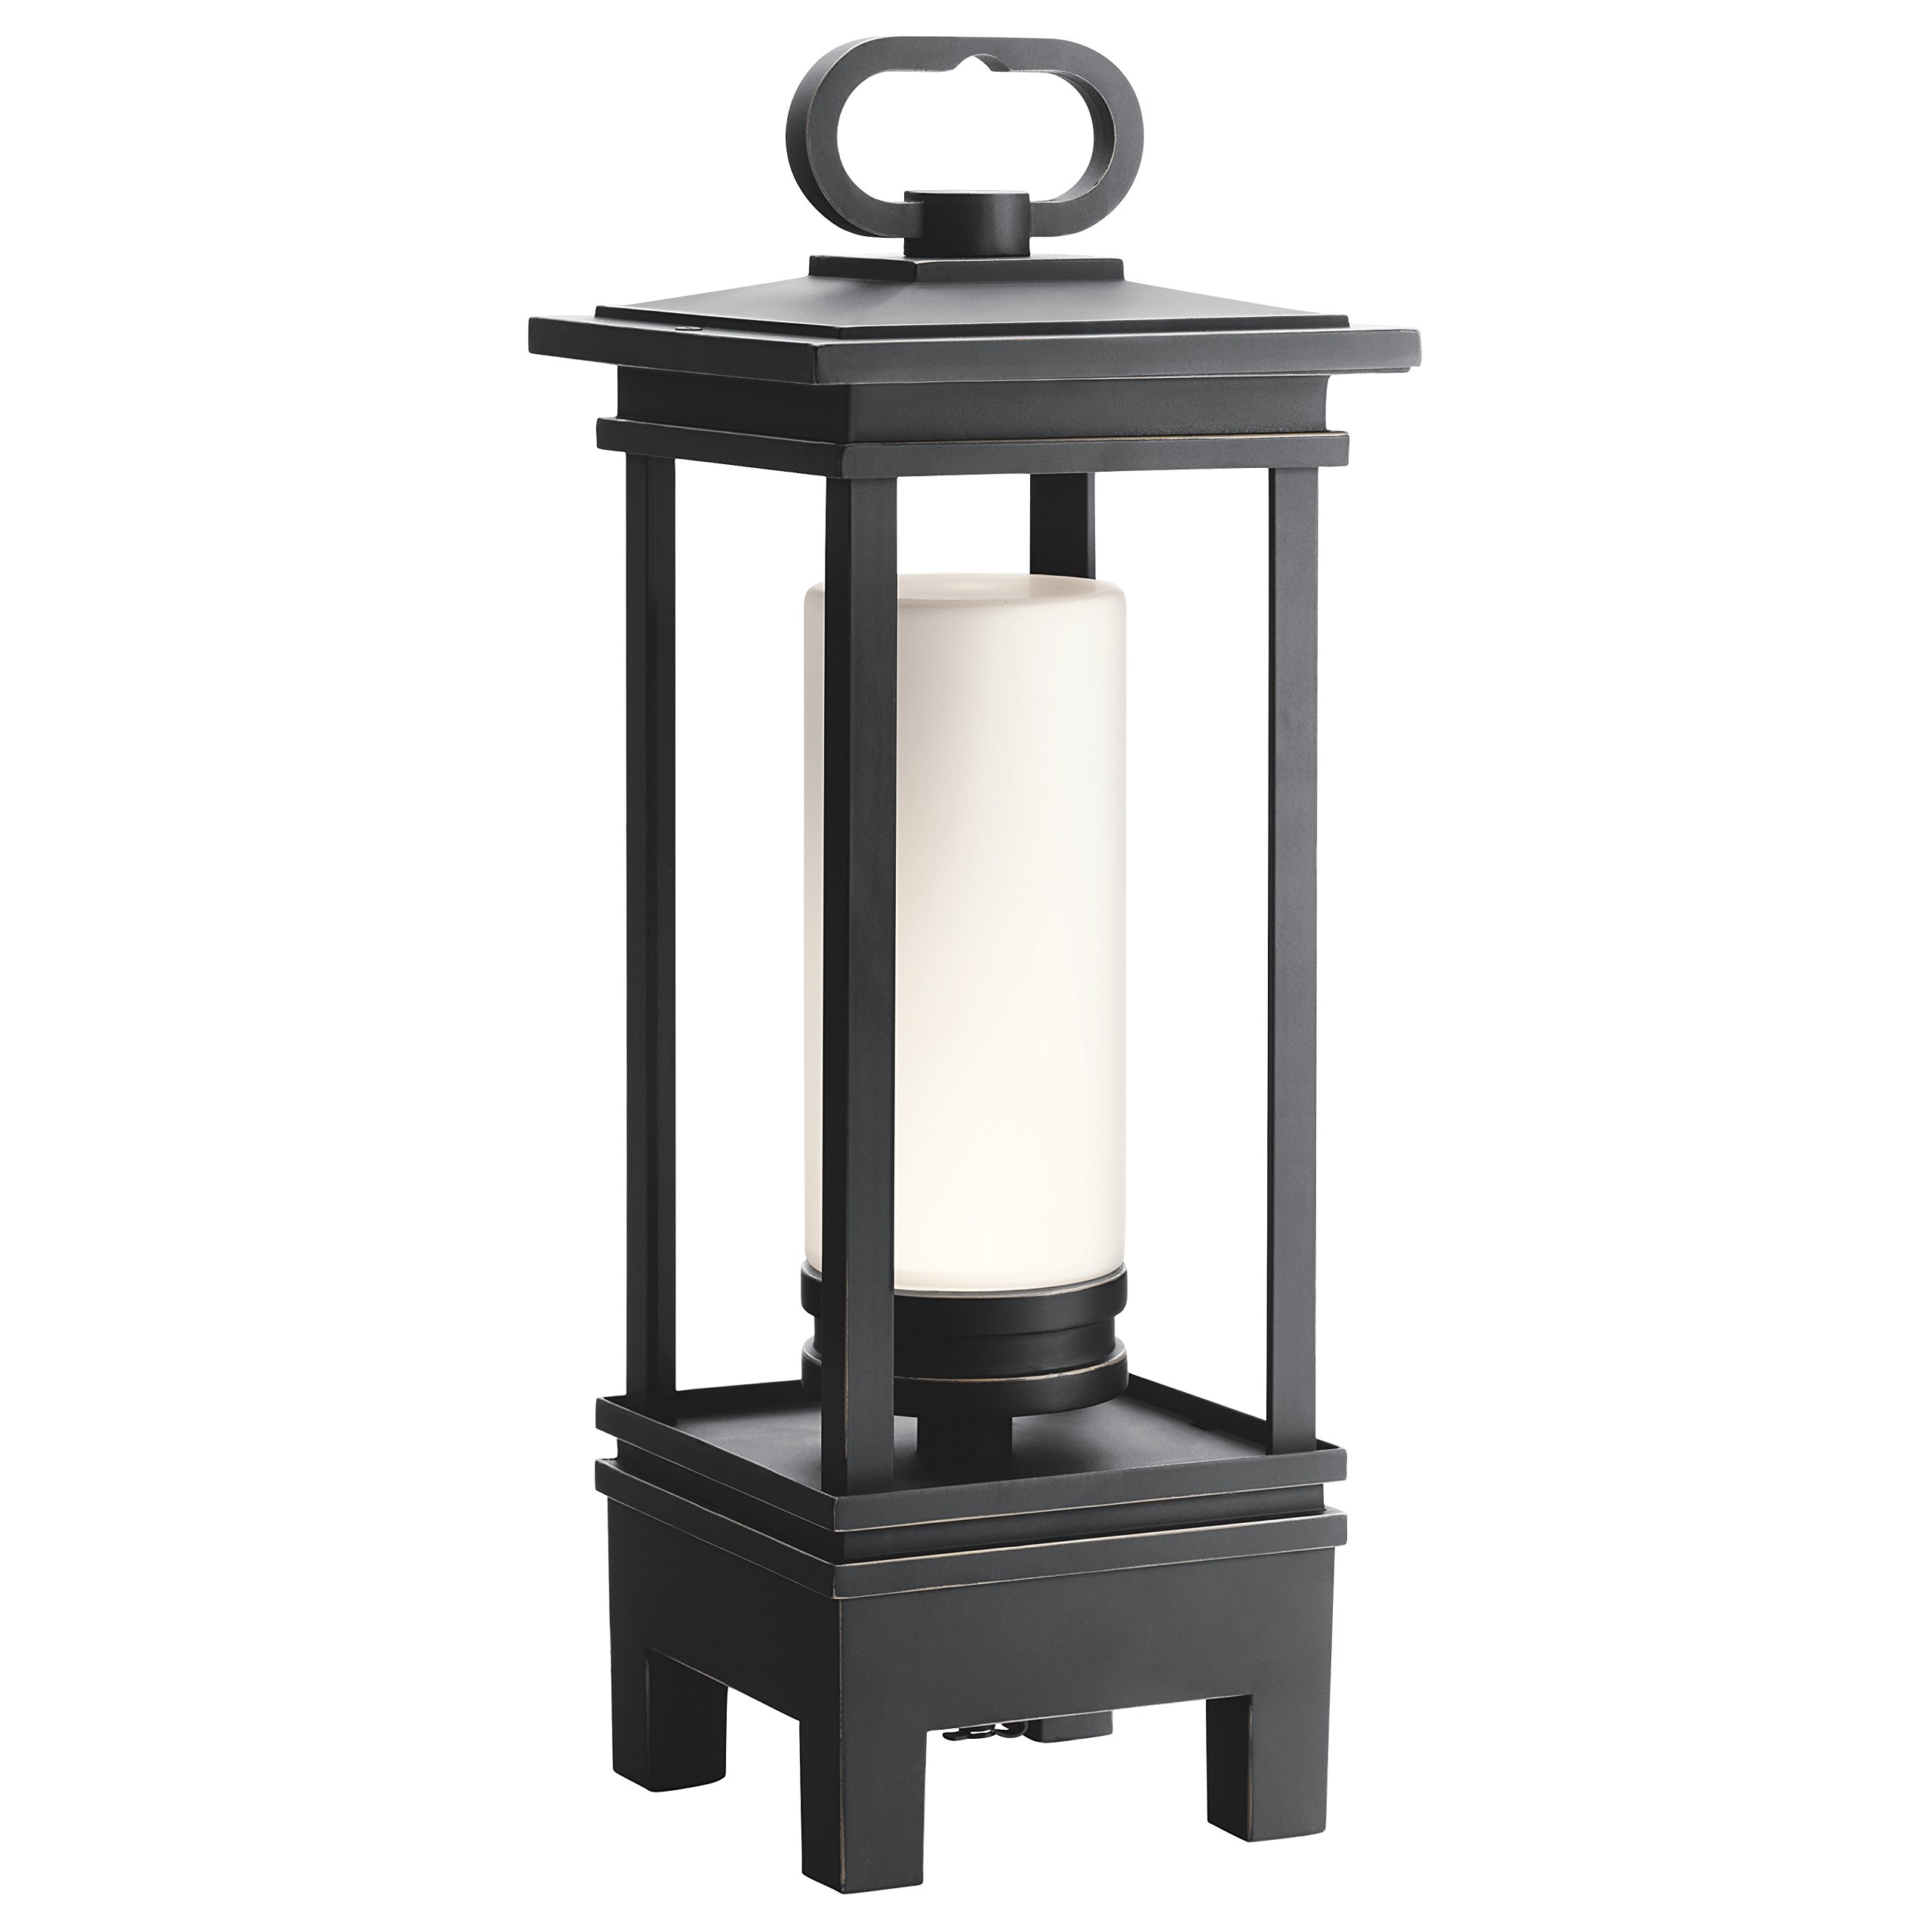 Kichler 49473RZLED South Hope Portable Bluetooth LED Lantern, 1-Light, Rubbed Bronze by Kichler